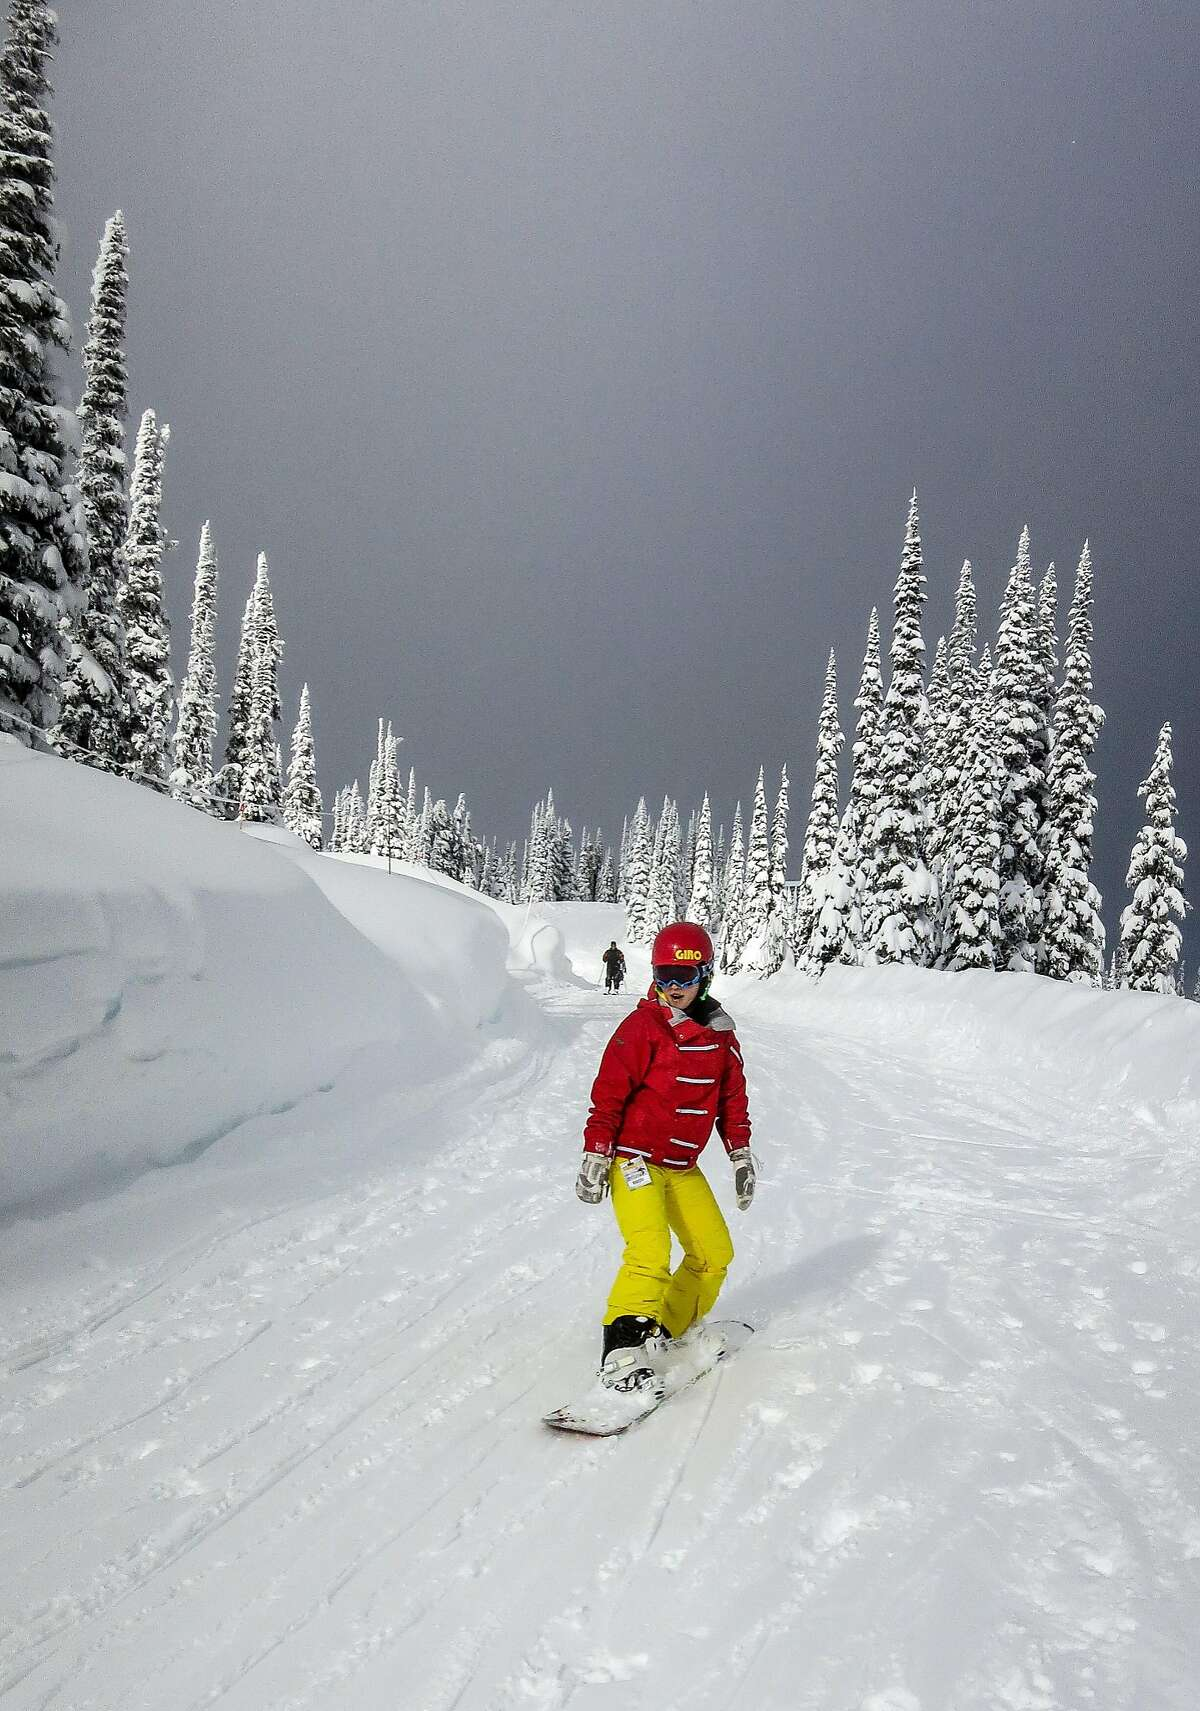 Cruising a groomed trail at Whitewater Ski Resort.